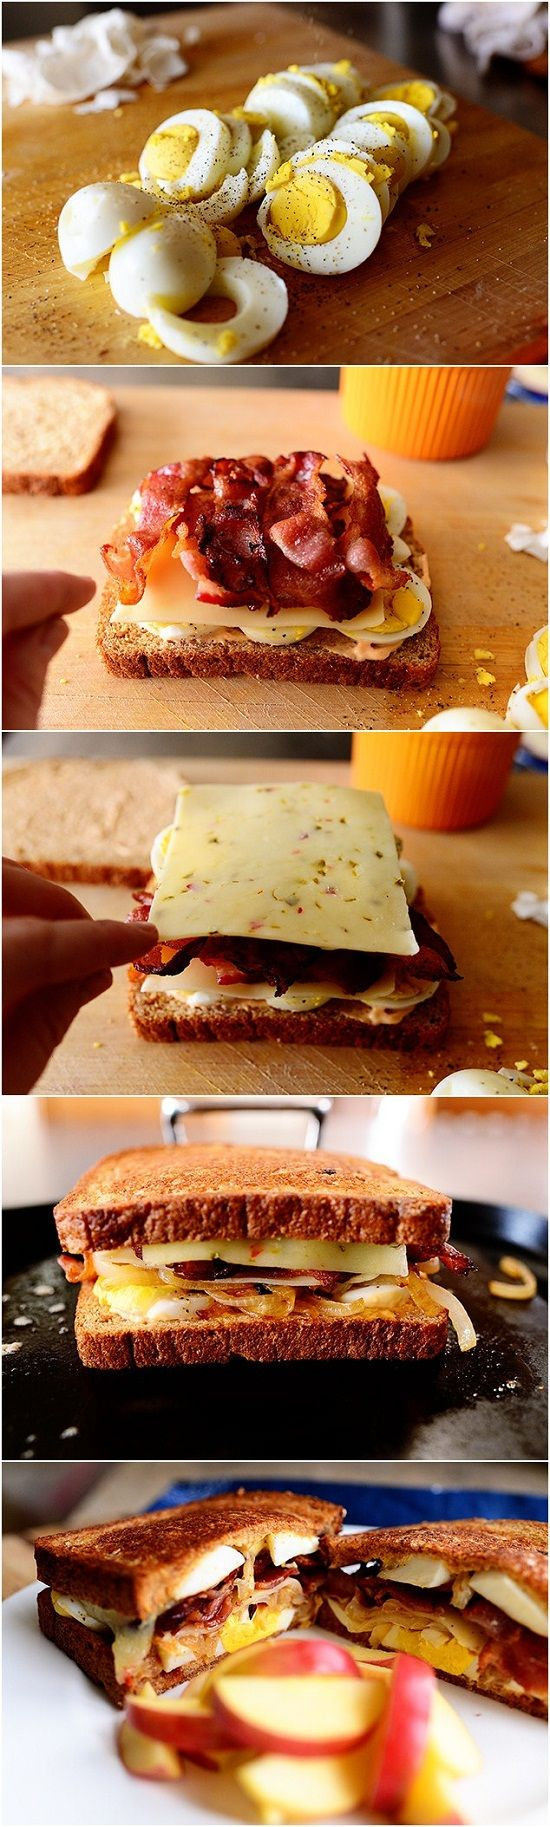 Ultimate Grilled Cheese Sandwich ~ Next time you're craving some grilled cheese and bacon for lunch one of the first things to come to mind is sandwiches.